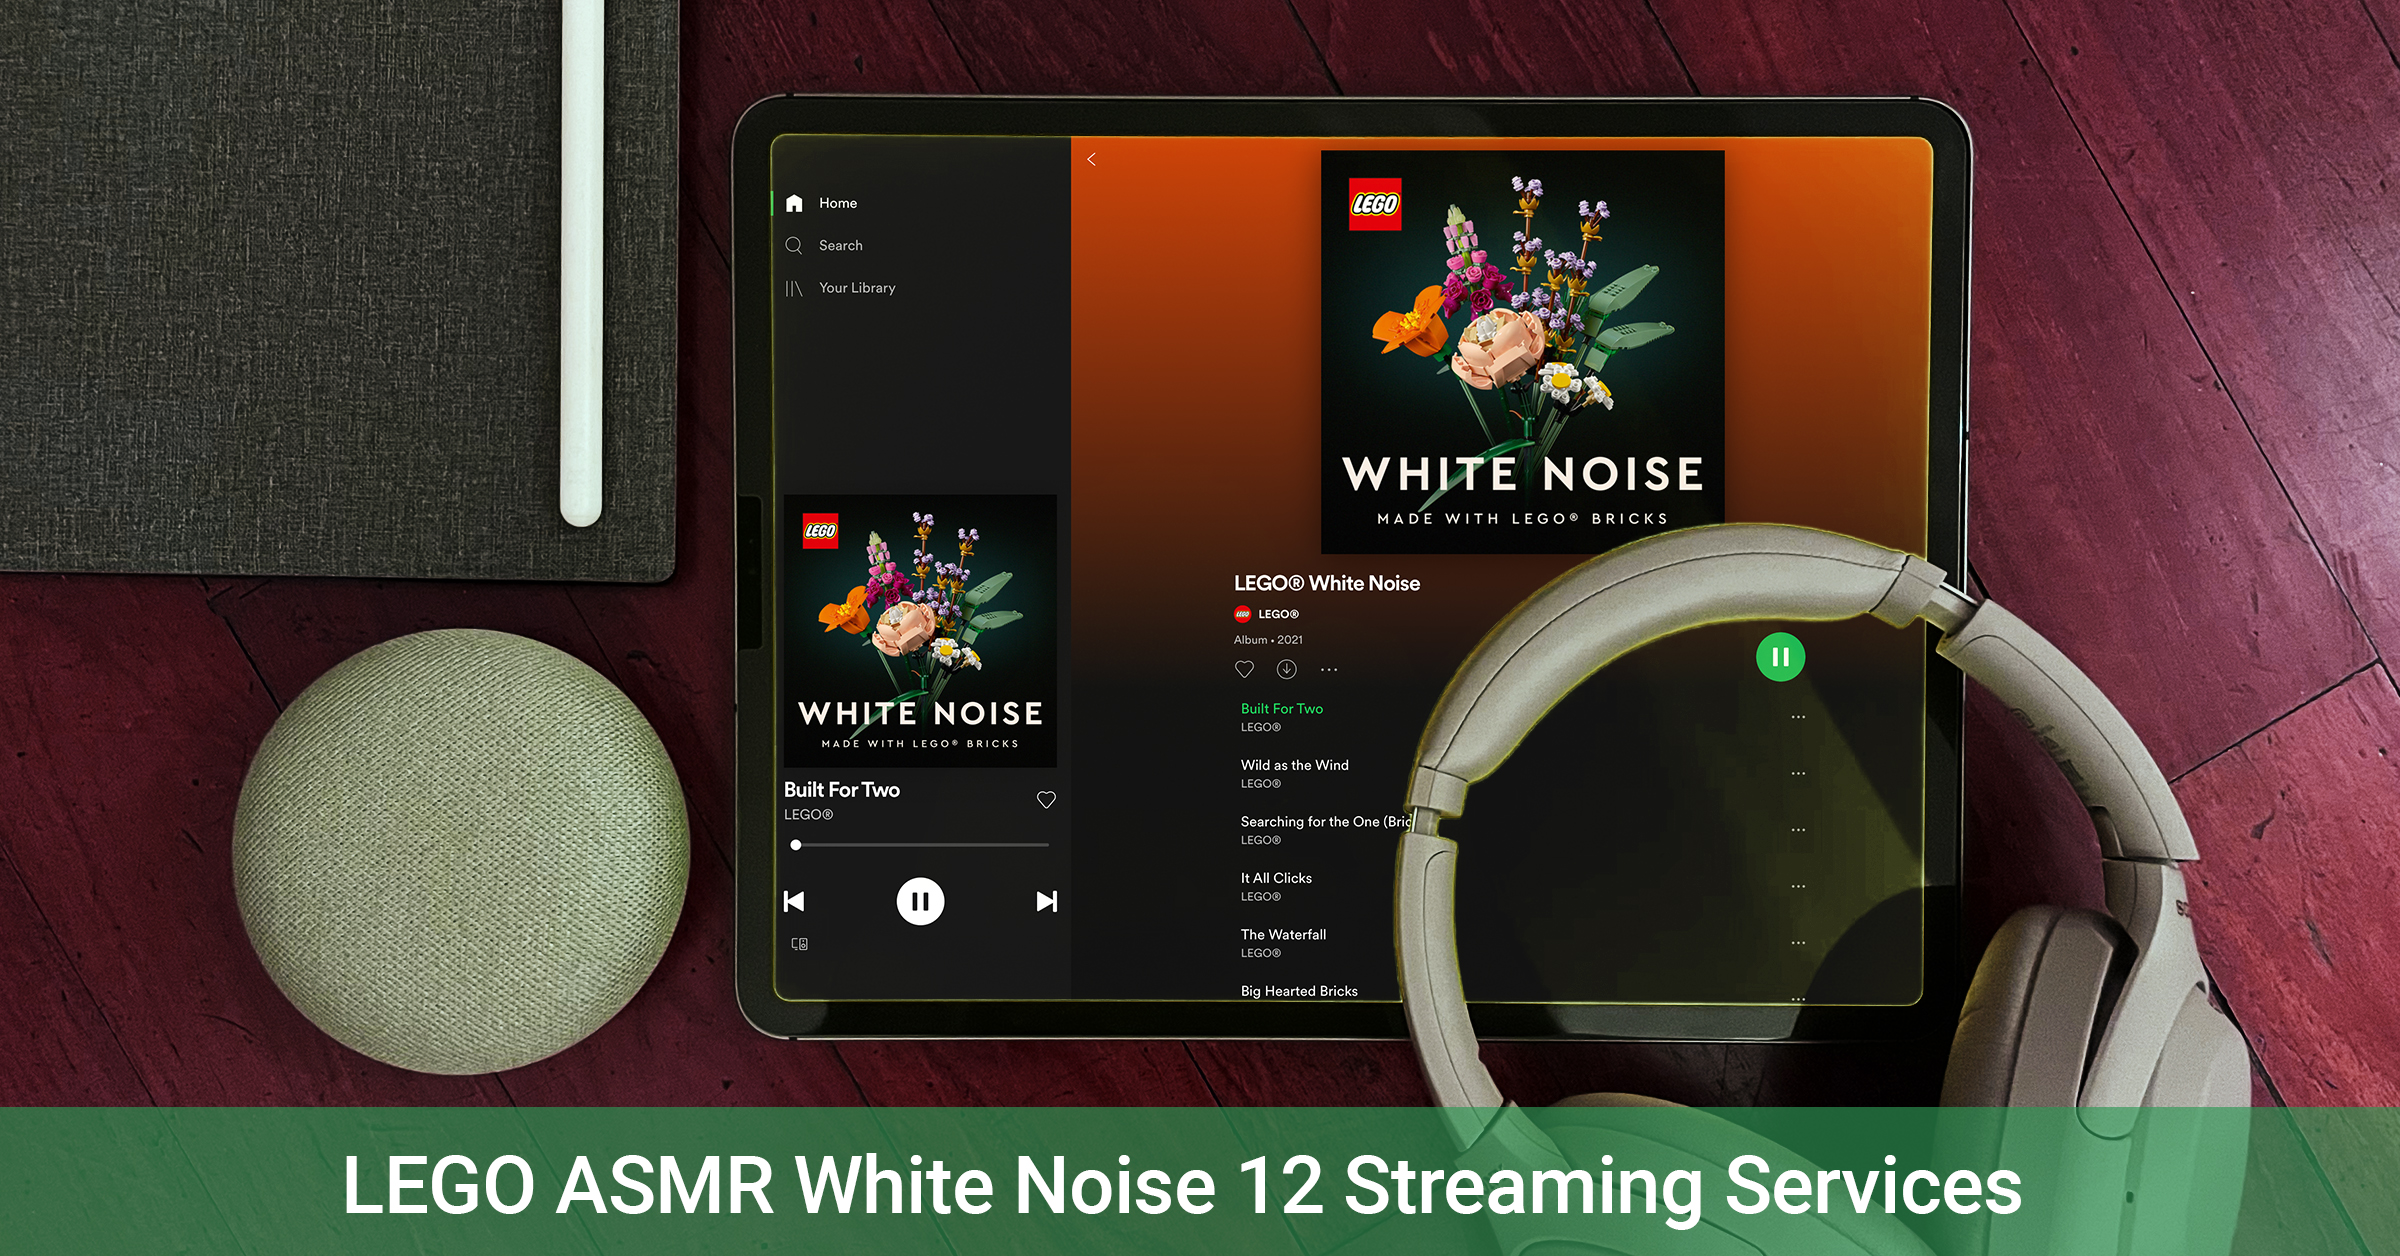 The making of LEGO ASMR White Noise and the 12 streaming services available for access [News]